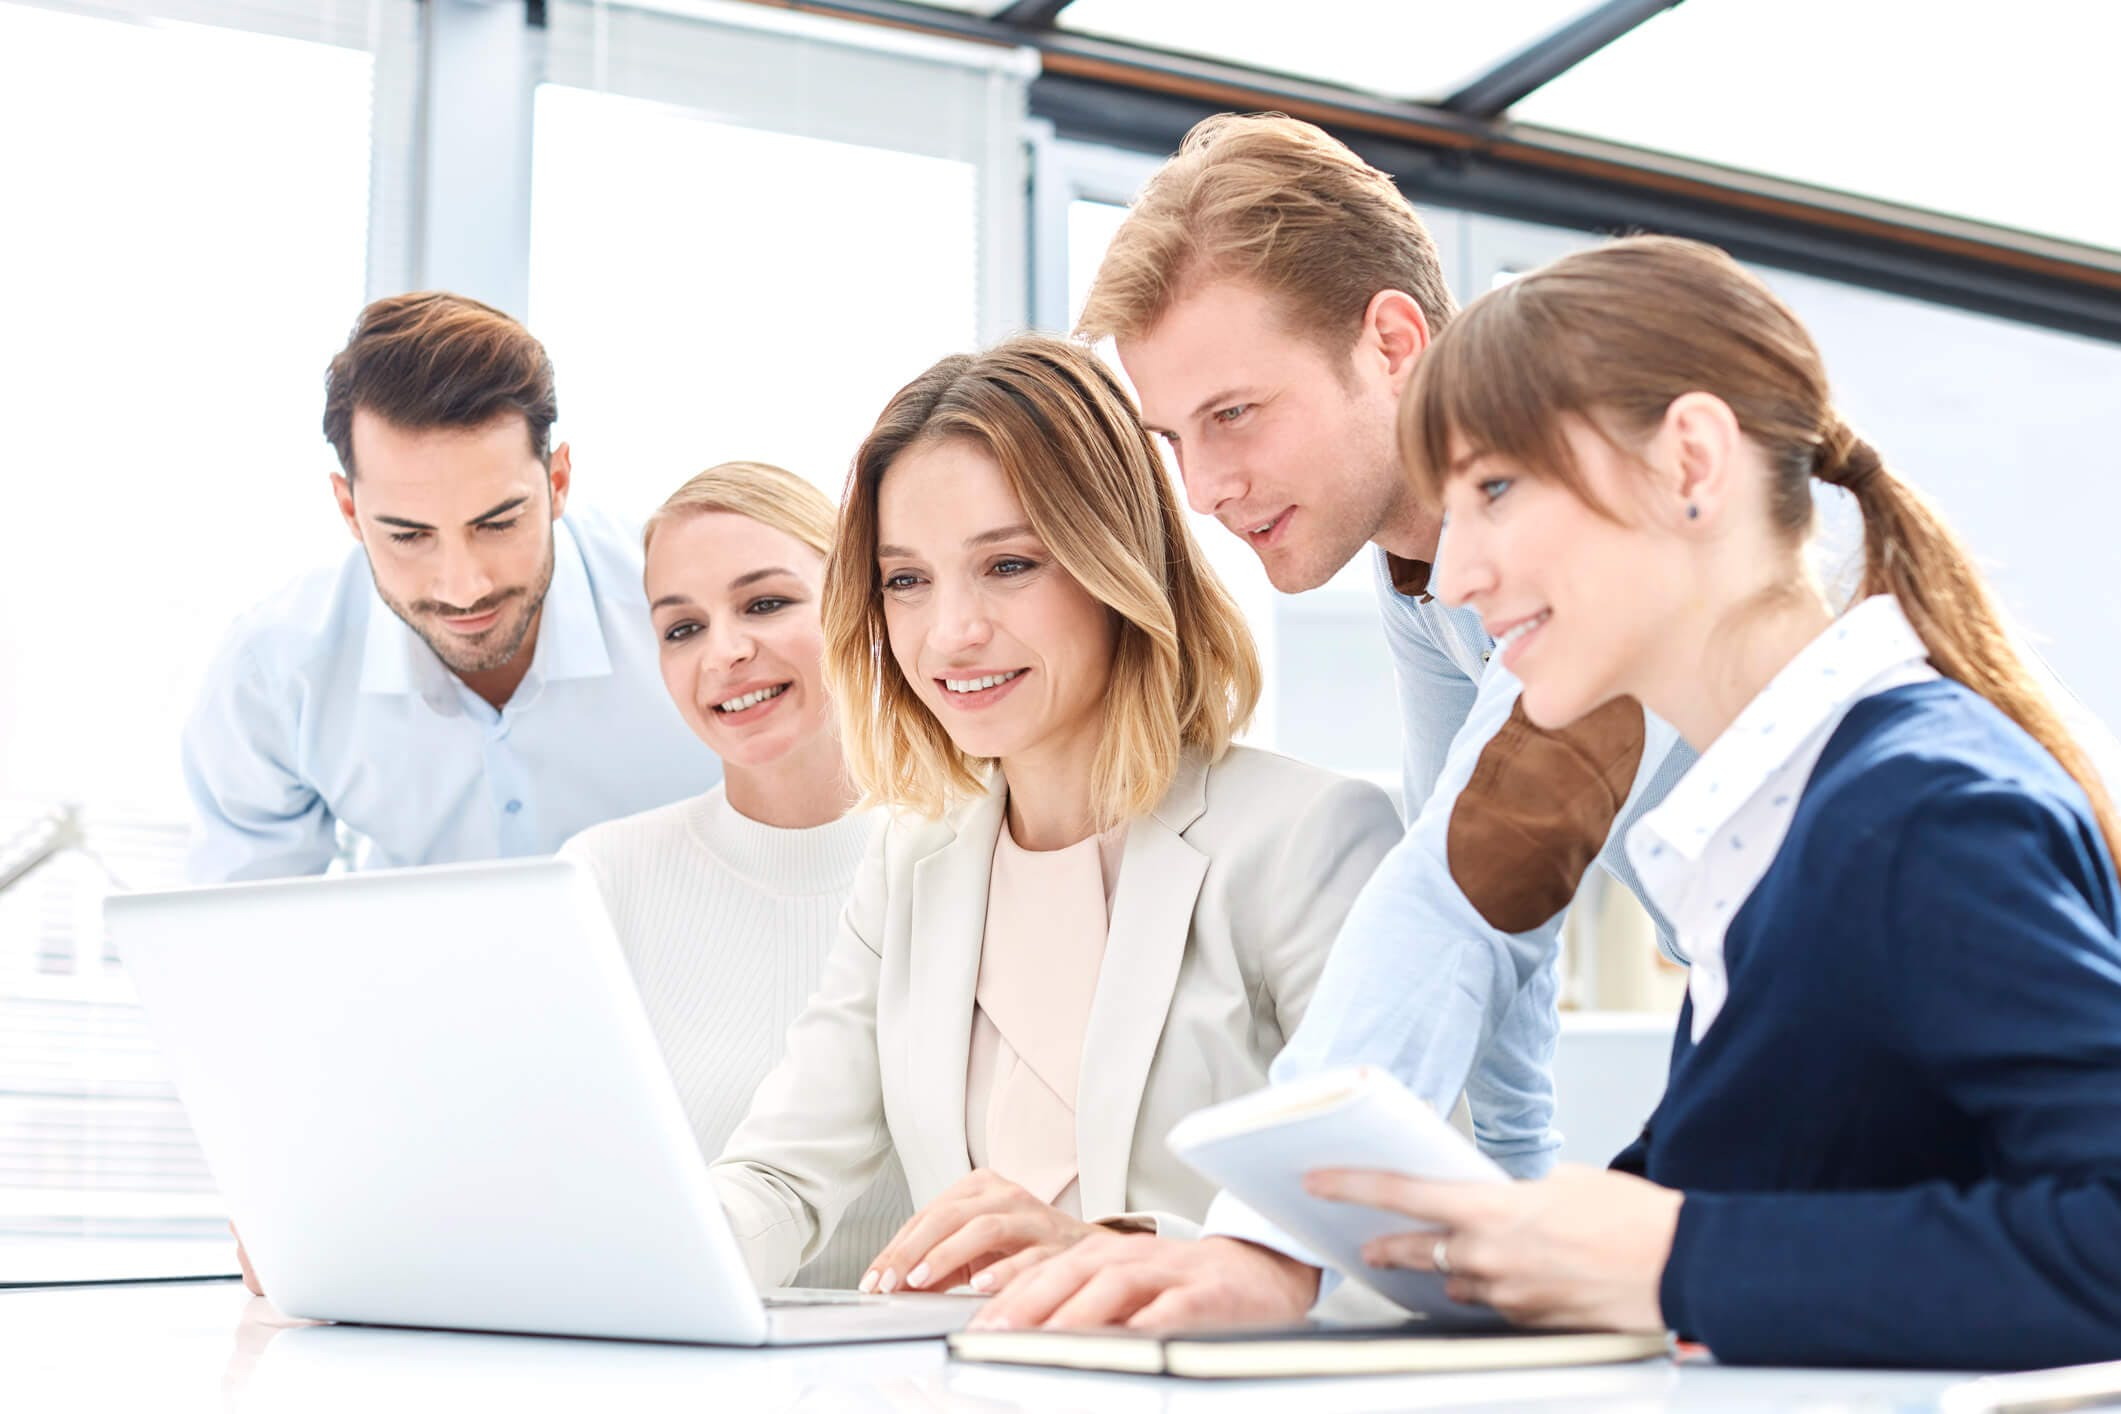 Titelbild-Team-Meeting-jung-Start-up-iStock-830494512-stockvisual